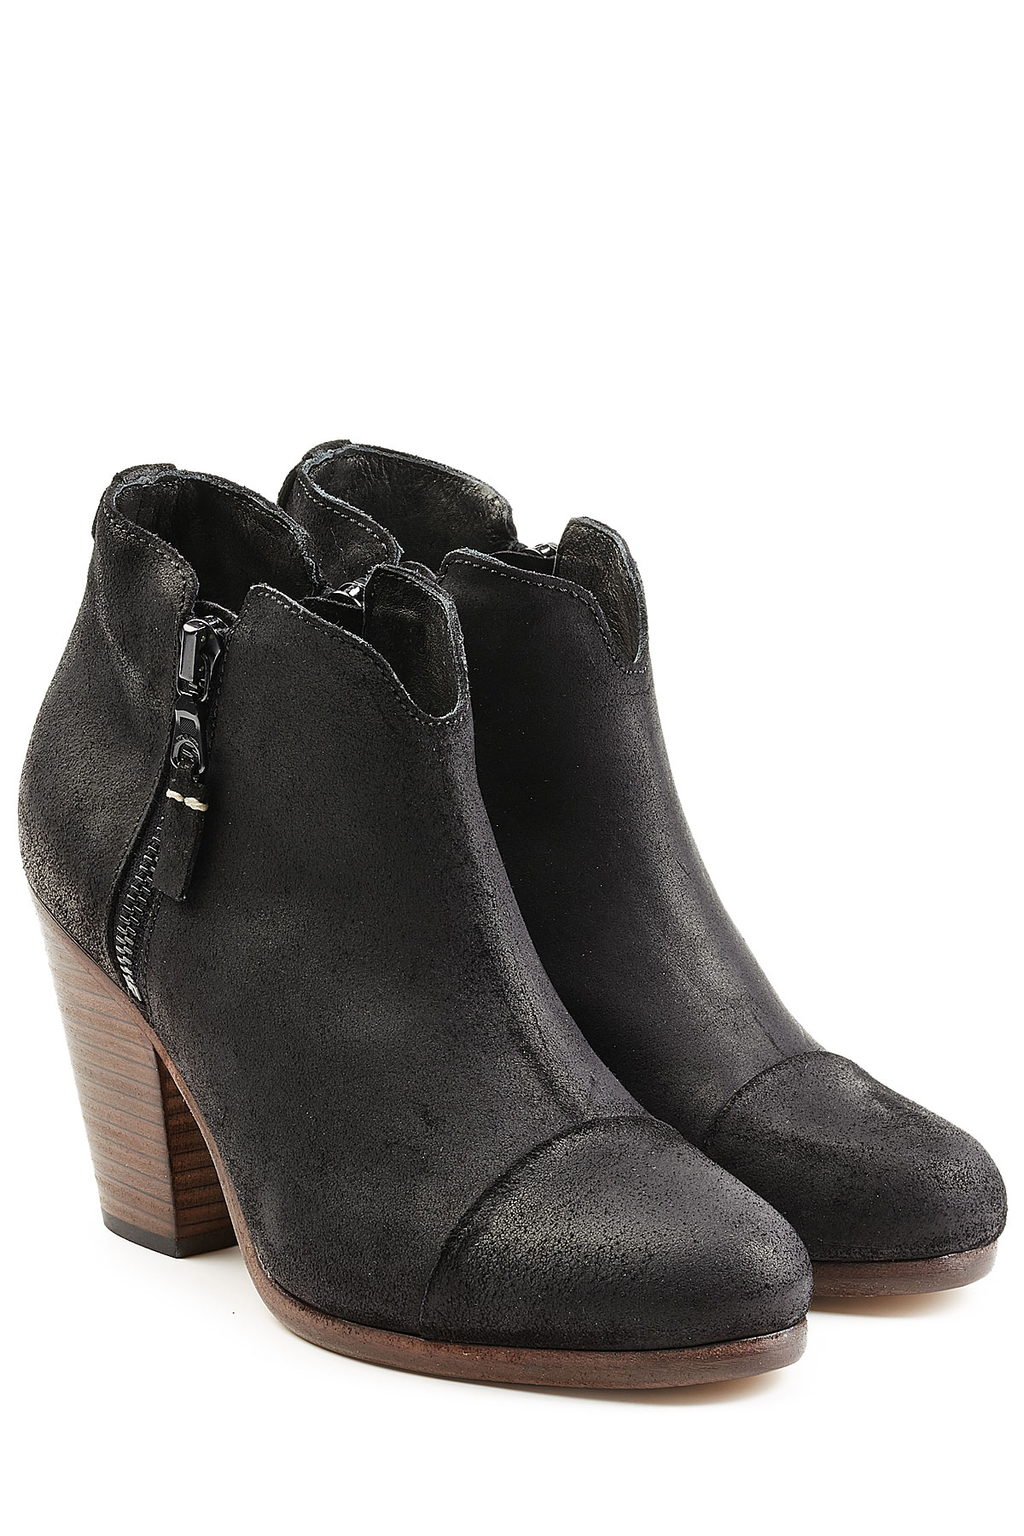 Waxed Suede Ankle Boots Black - predominant colour: black; occasions: casual, creative work; material: leather; heel height: mid; heel: block; toe: round toe; boot length: ankle boot; style: standard; finish: plain; pattern: plain; season: s/s 2016; wardrobe: basic